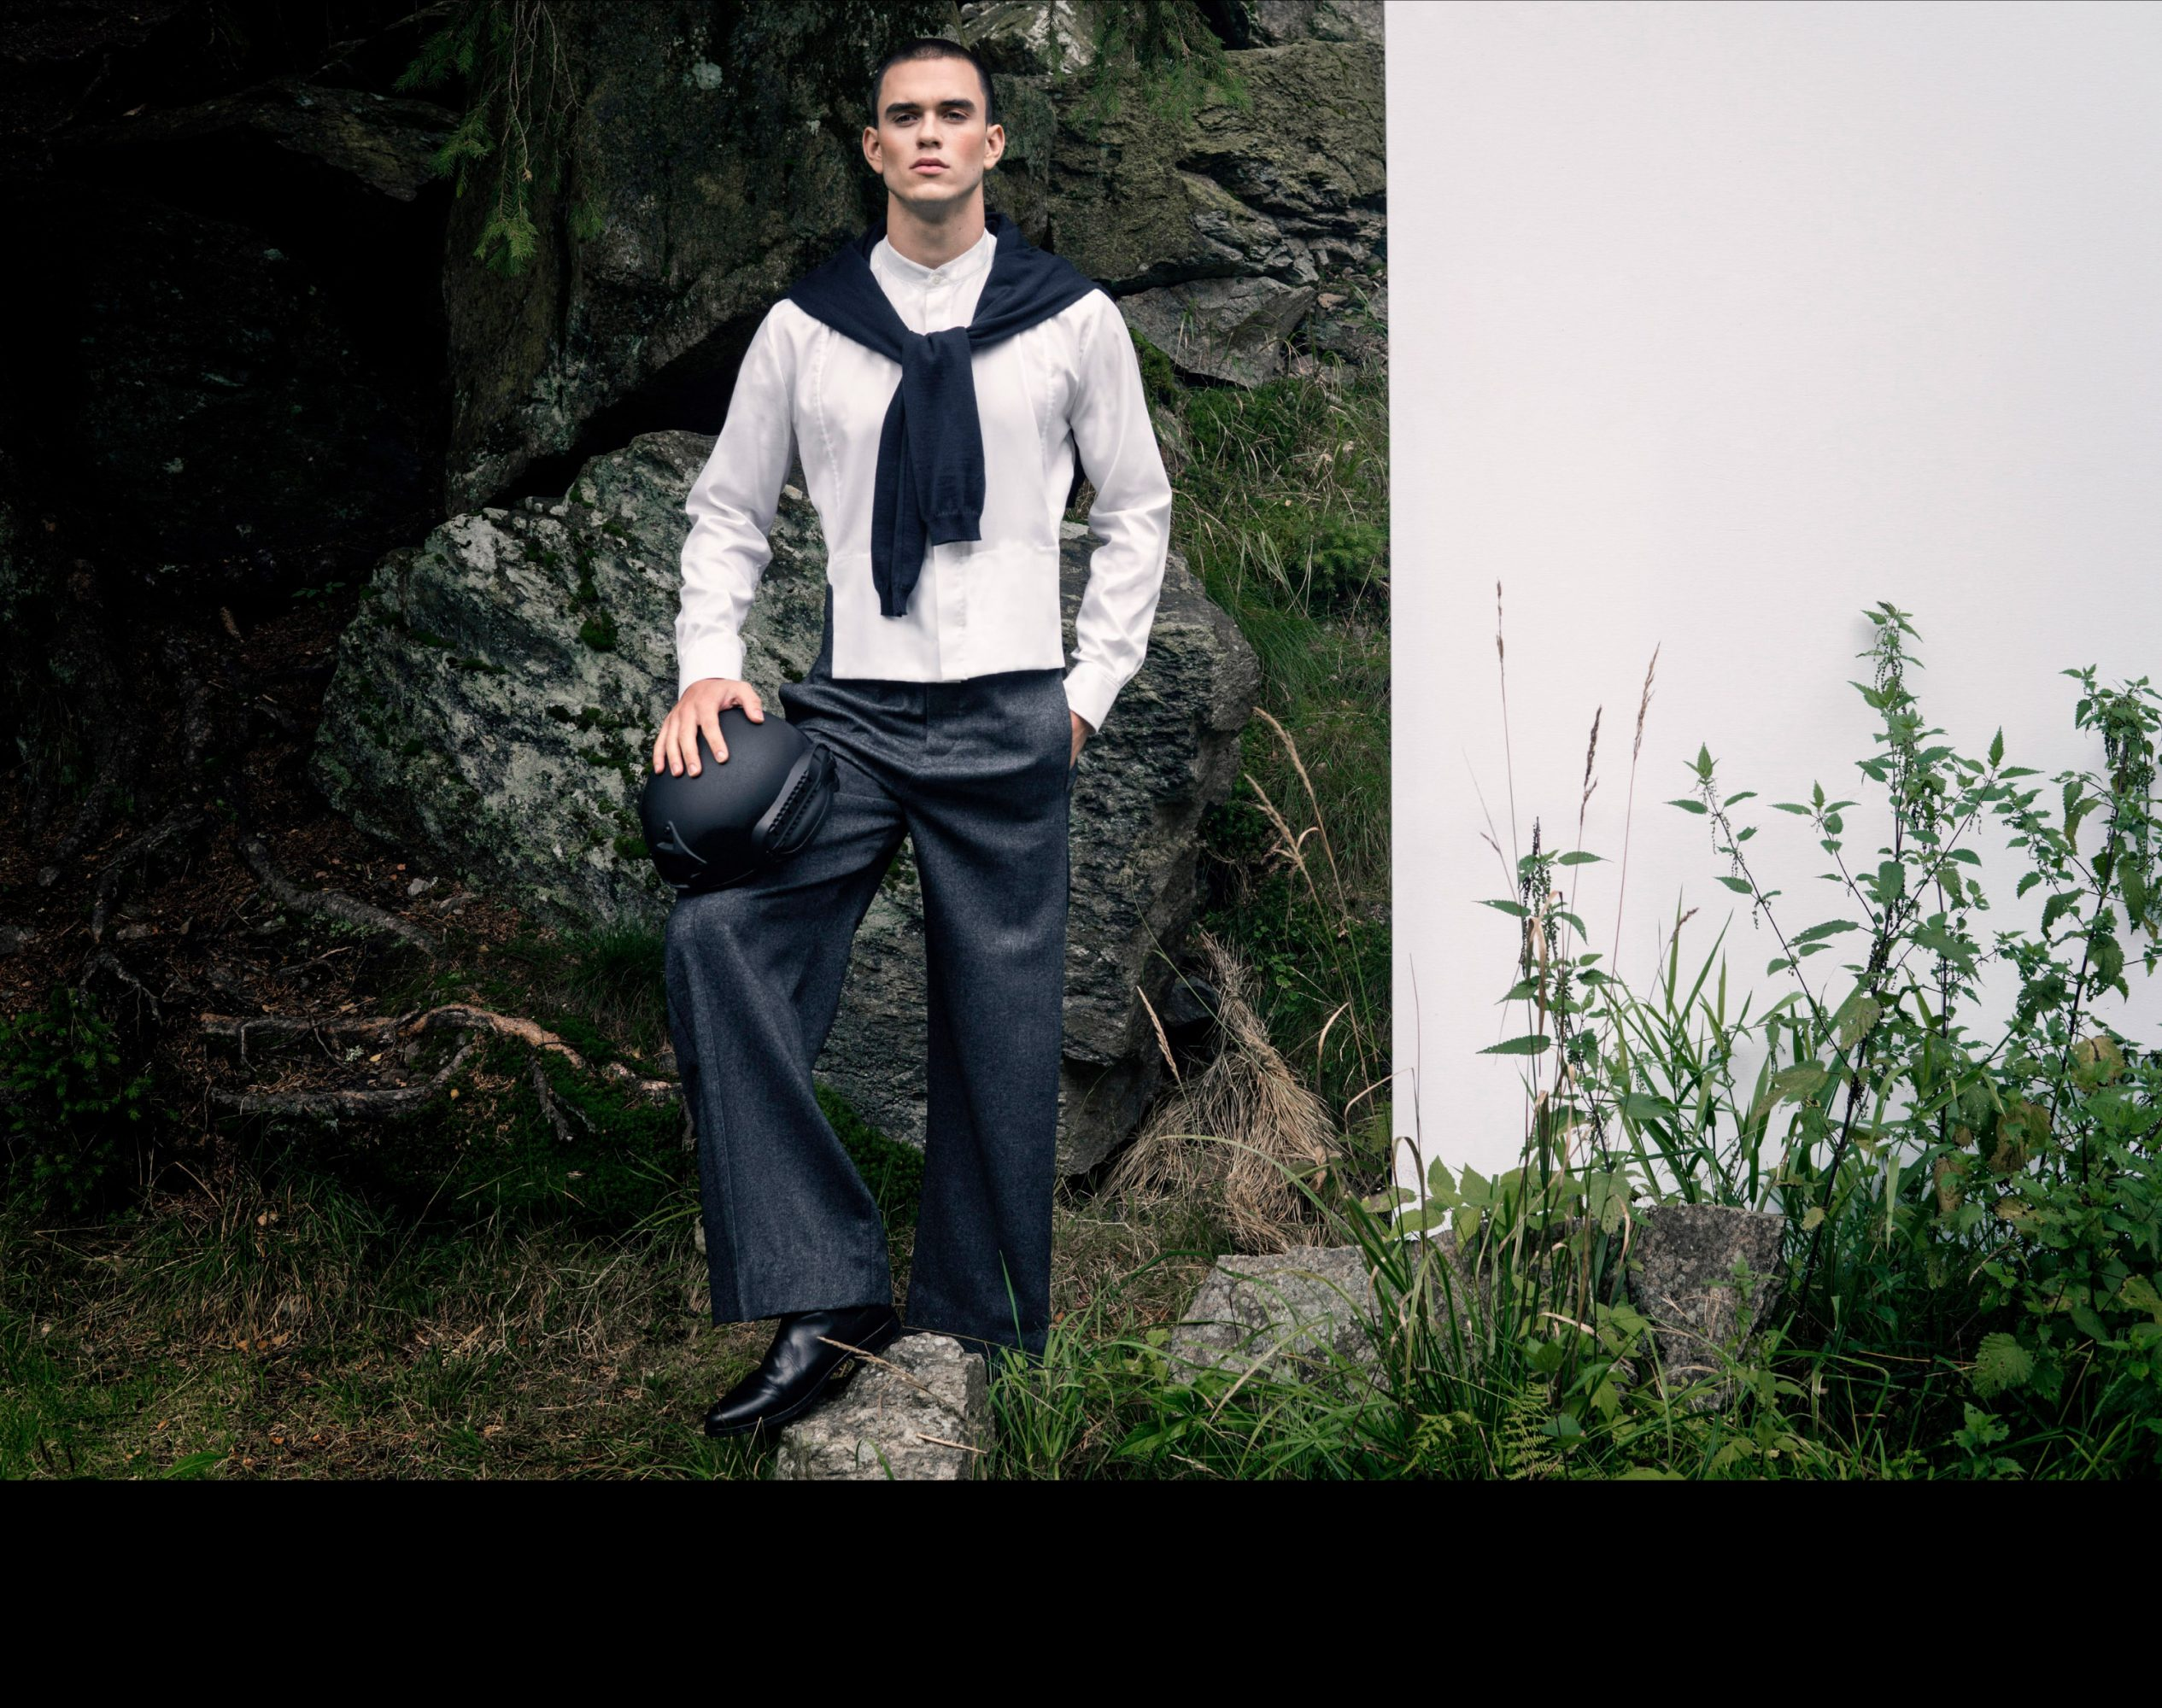 304e201a15f3 BRACHMANN s Lookbook A W 2017 18 Men